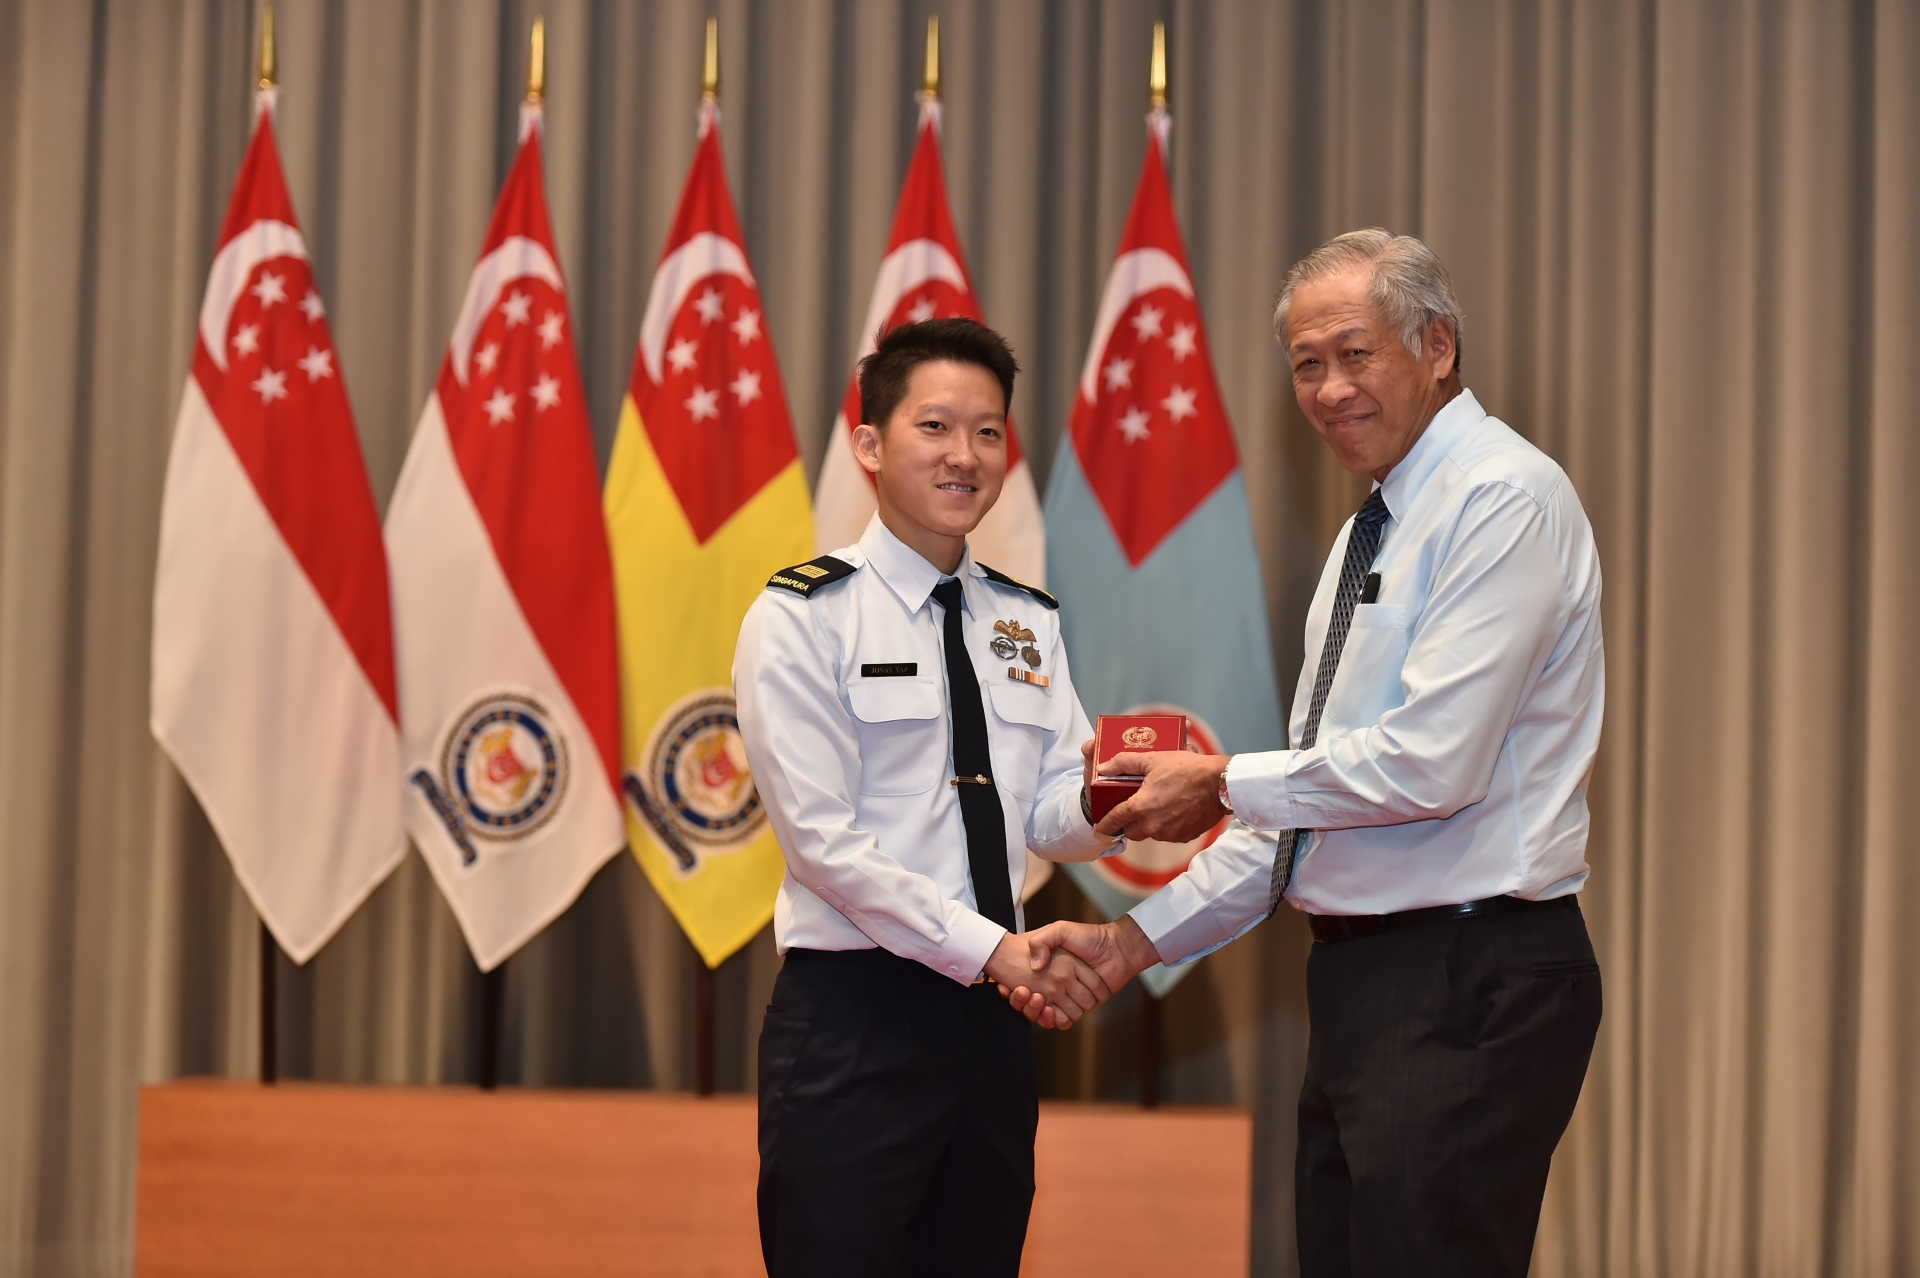 SAF personnel recognised for role in fight against piracy, terrorism